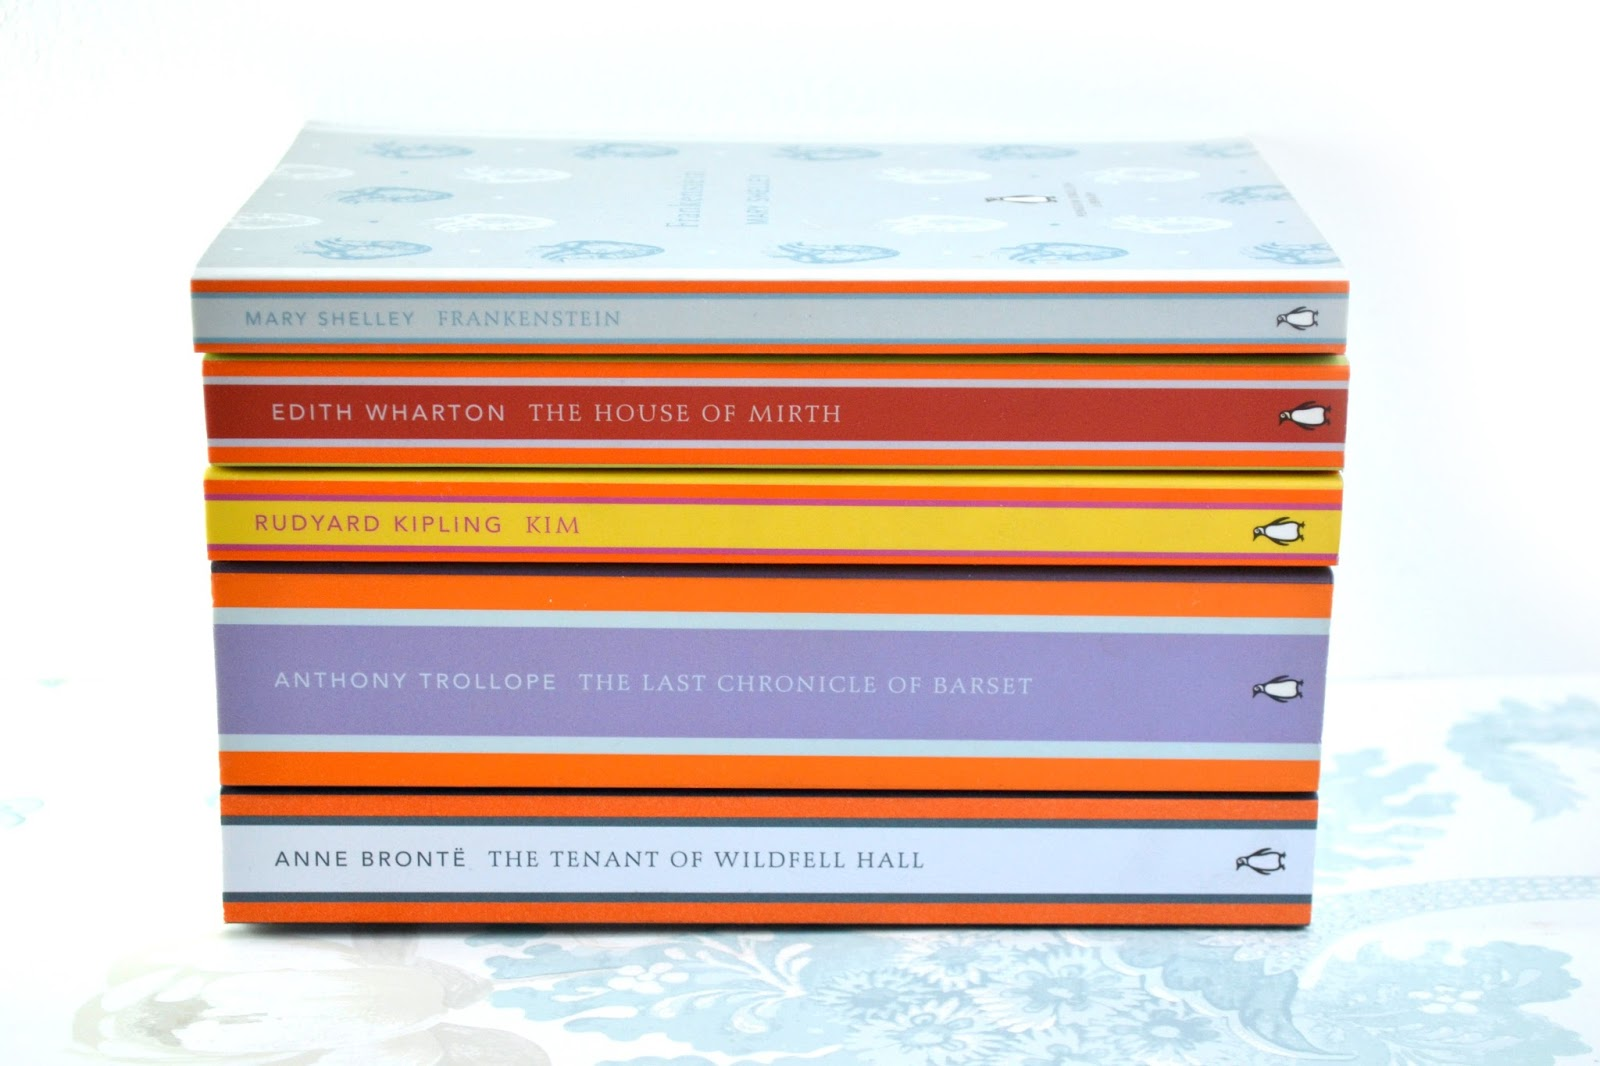 A pile of Penguin English Classic books